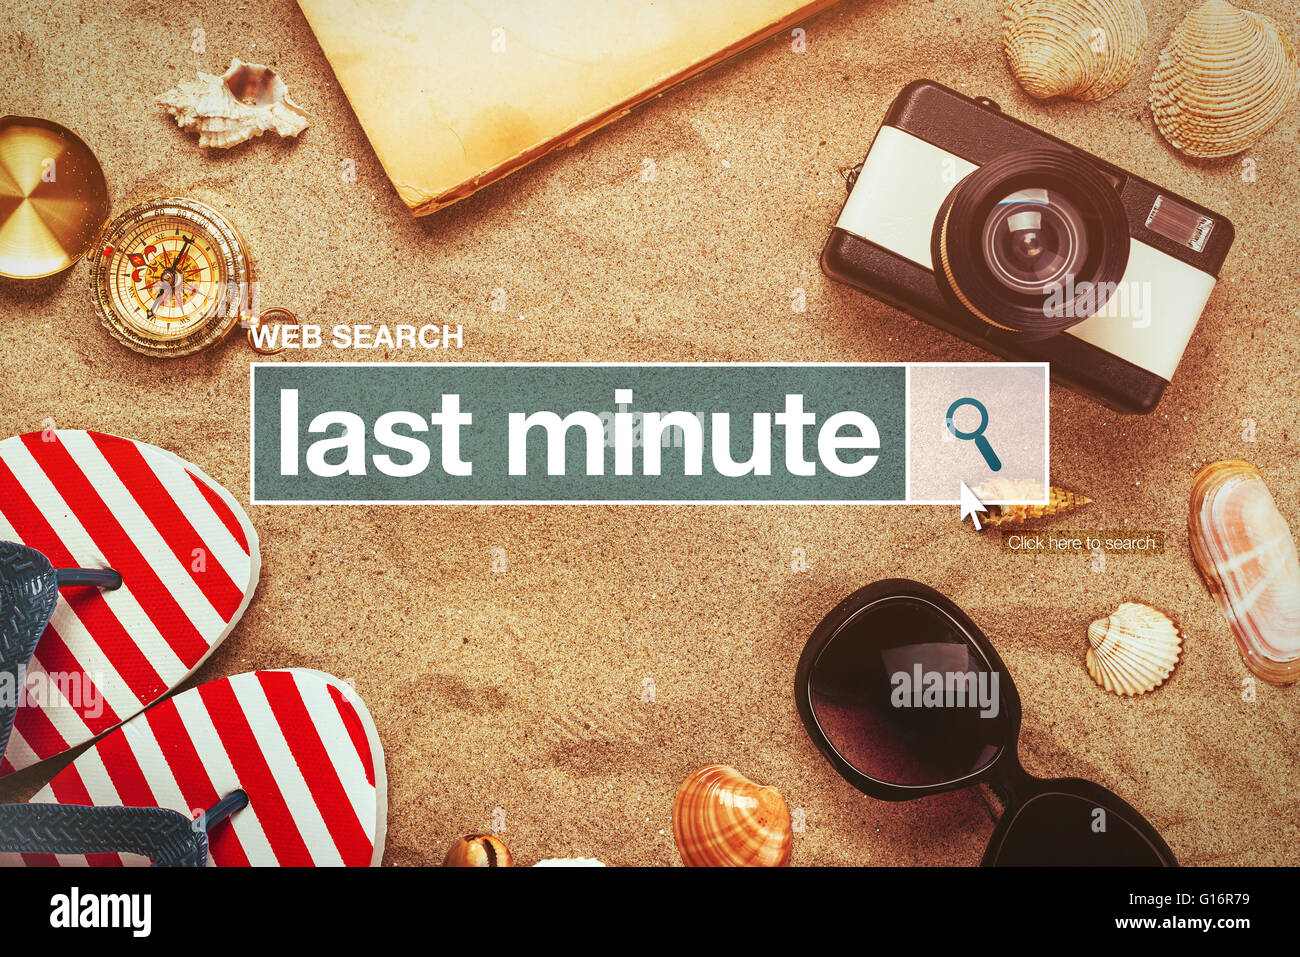 Last minute web search bar glossary term on internet, last minute tourist agency arrangement offers - Stock Image